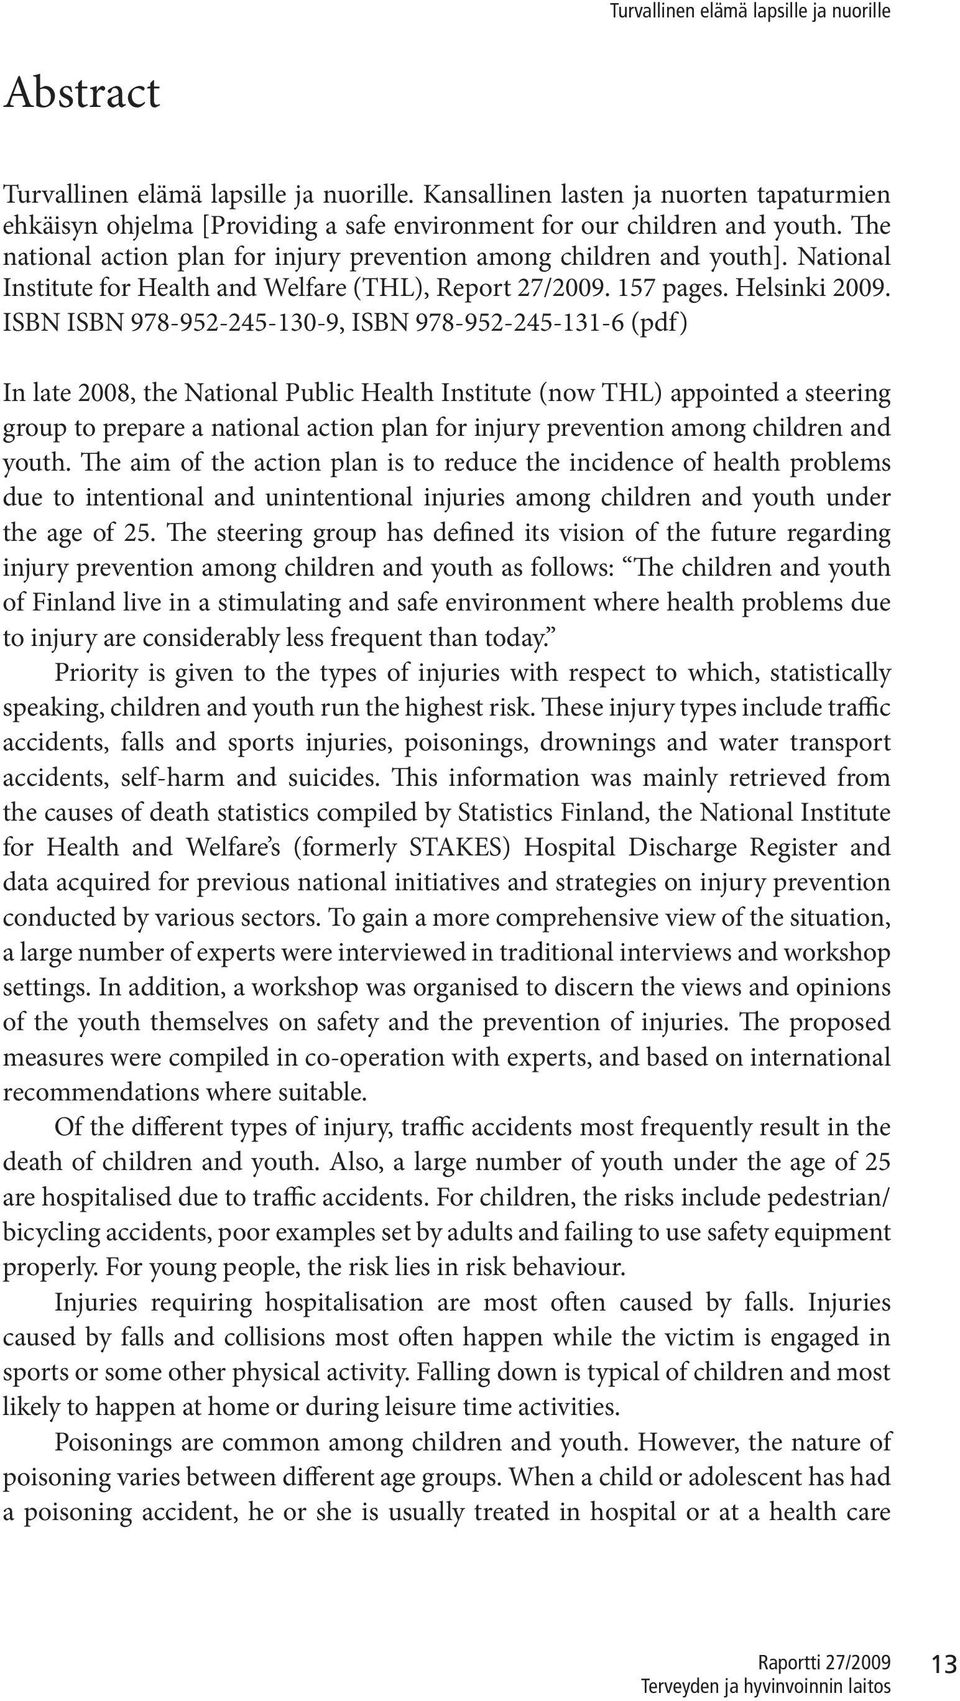 ISBN ISBN 978-952-245-130-9, ISBN 978-952-245-131-6 (pdf) In late 2008, the National Public Health Institute (now THL) appointed a steering group to prepare a national action plan for injury